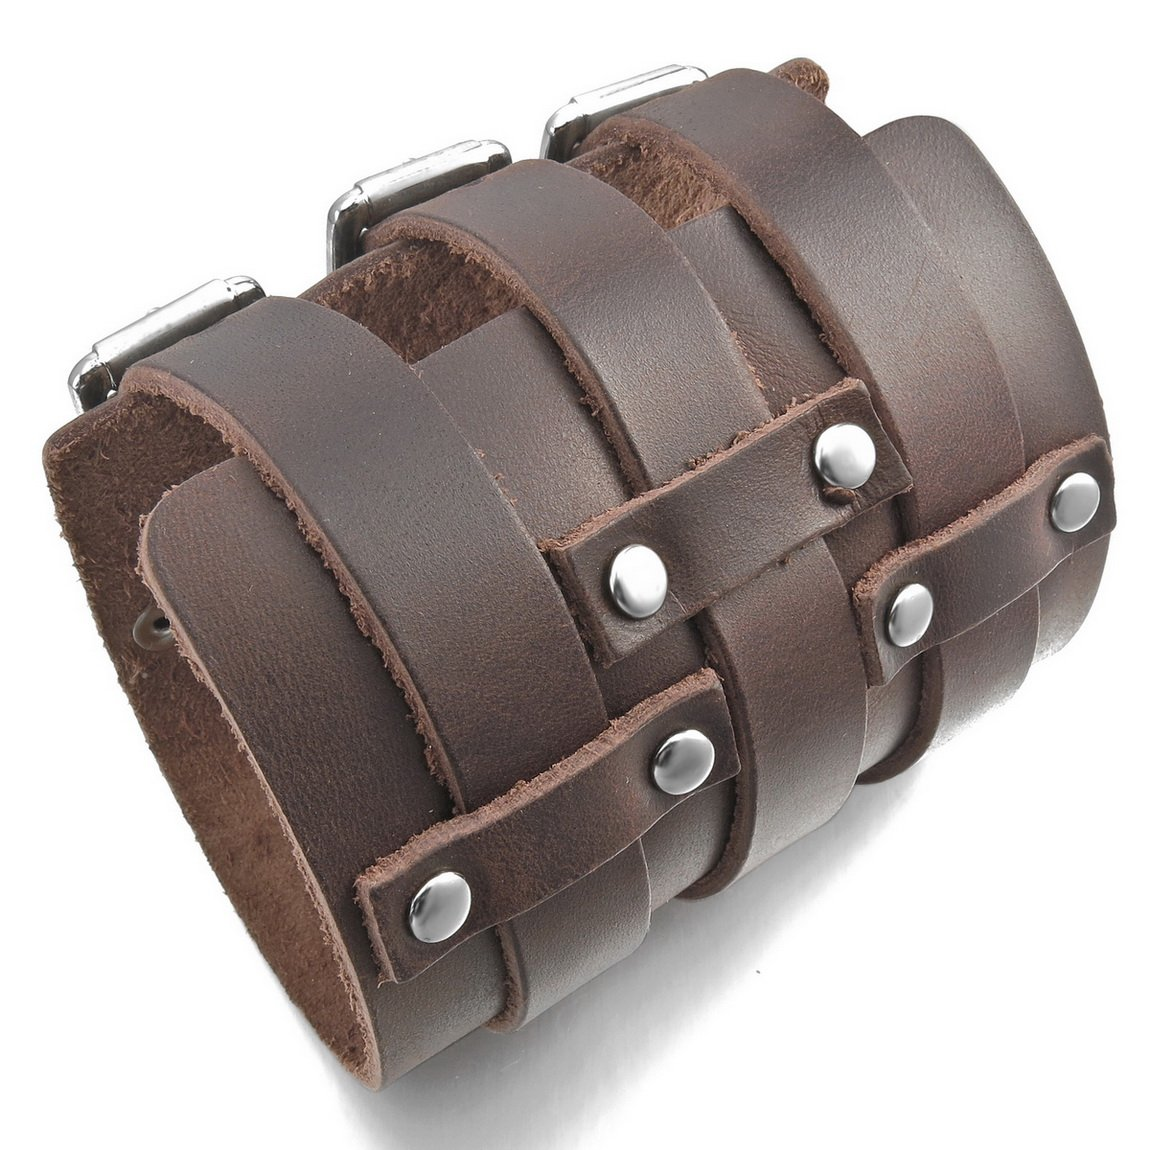 INBLUE Men's Alloy Genuine Leather Bracelet Bangle Cuff Silver Tone Brown Black Adjustable by INBLUE (Image #3)